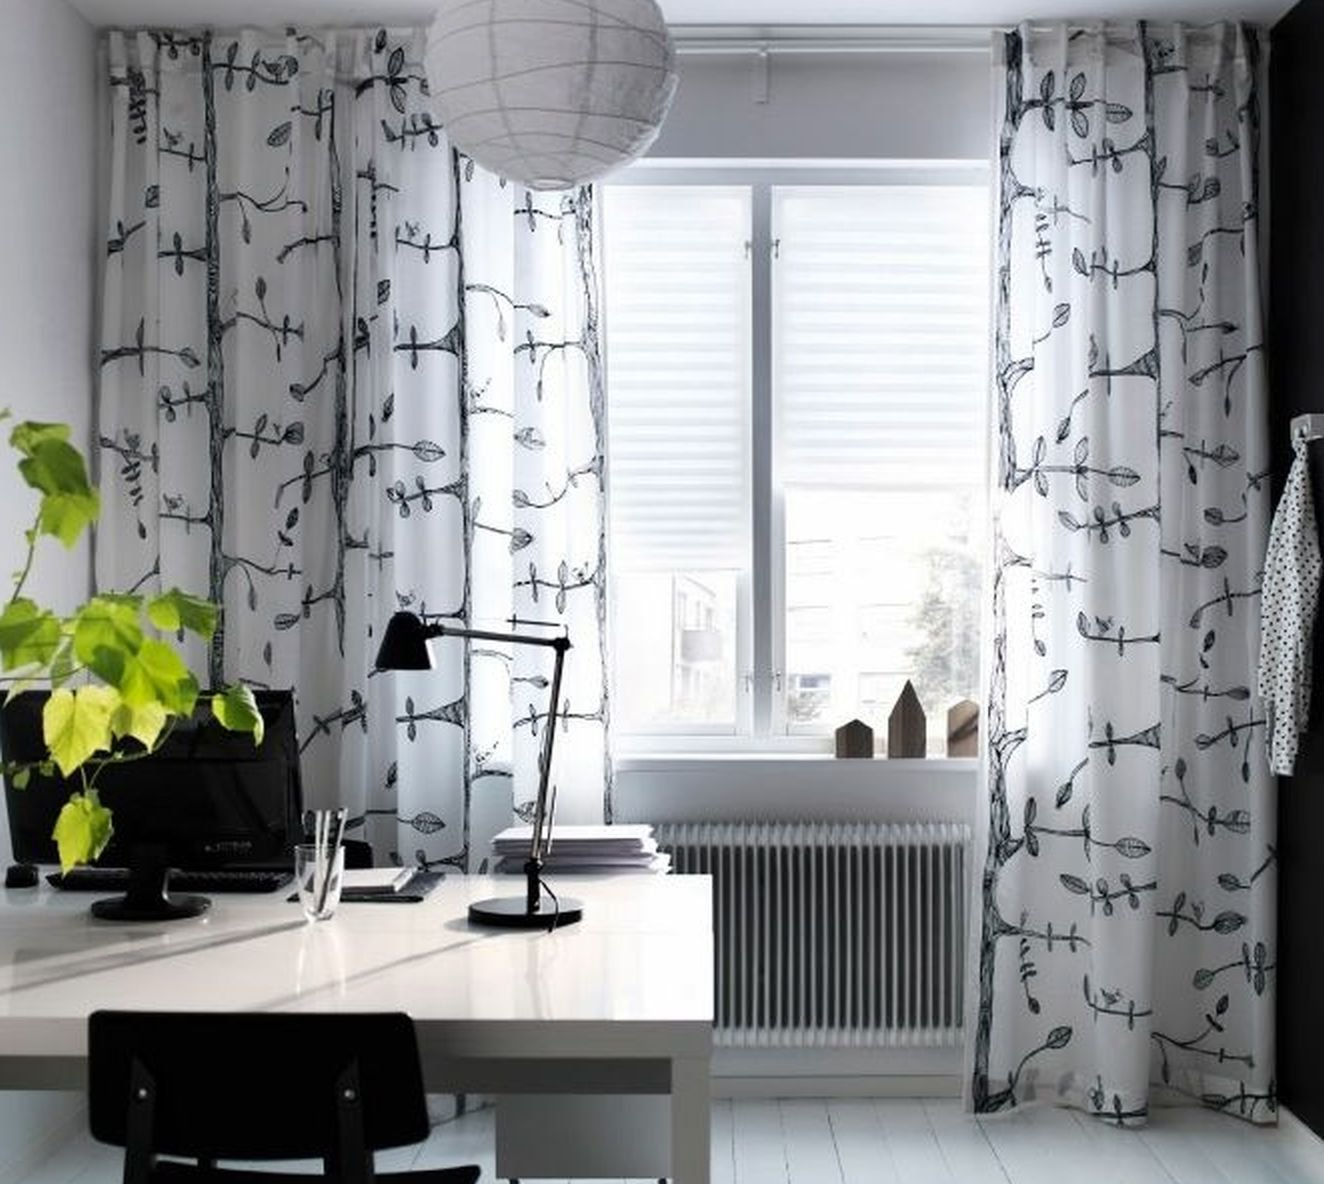 Ikea Eivor Curtains Drapes White Black Bird Leaf Garden Design